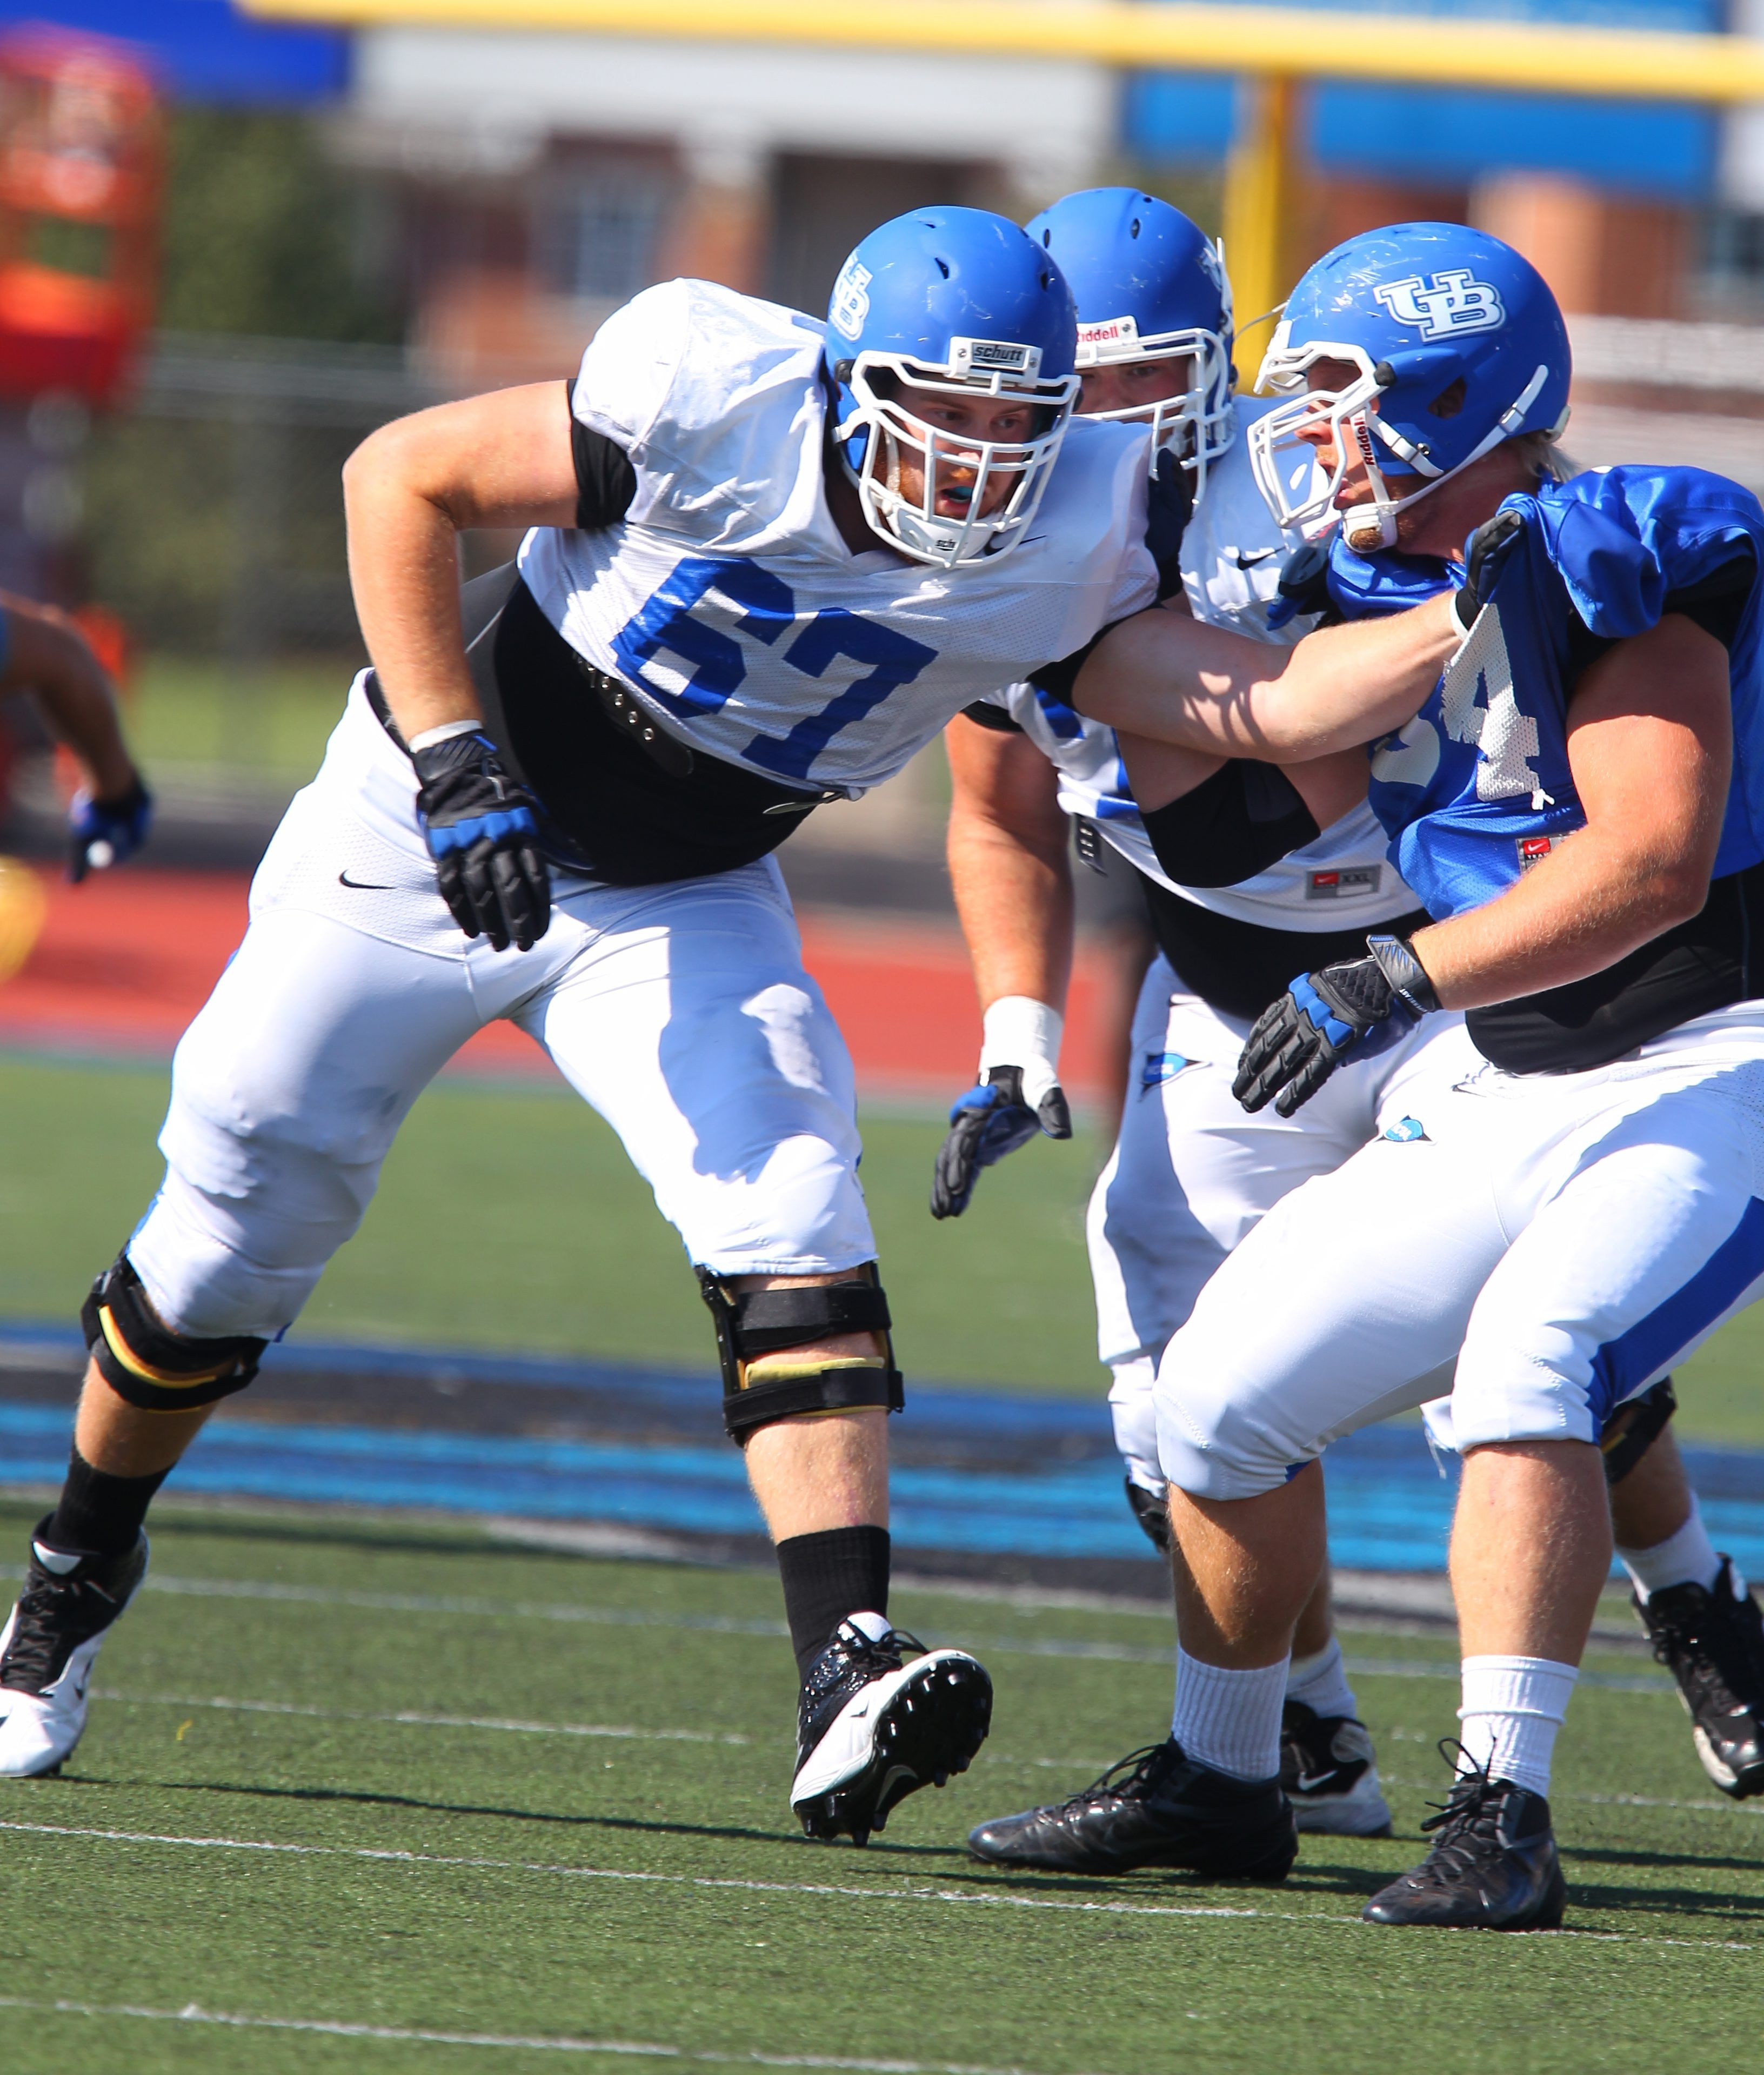 UB offensive tackle Jake Silas (67) benefits from experienced help on the line to his left.